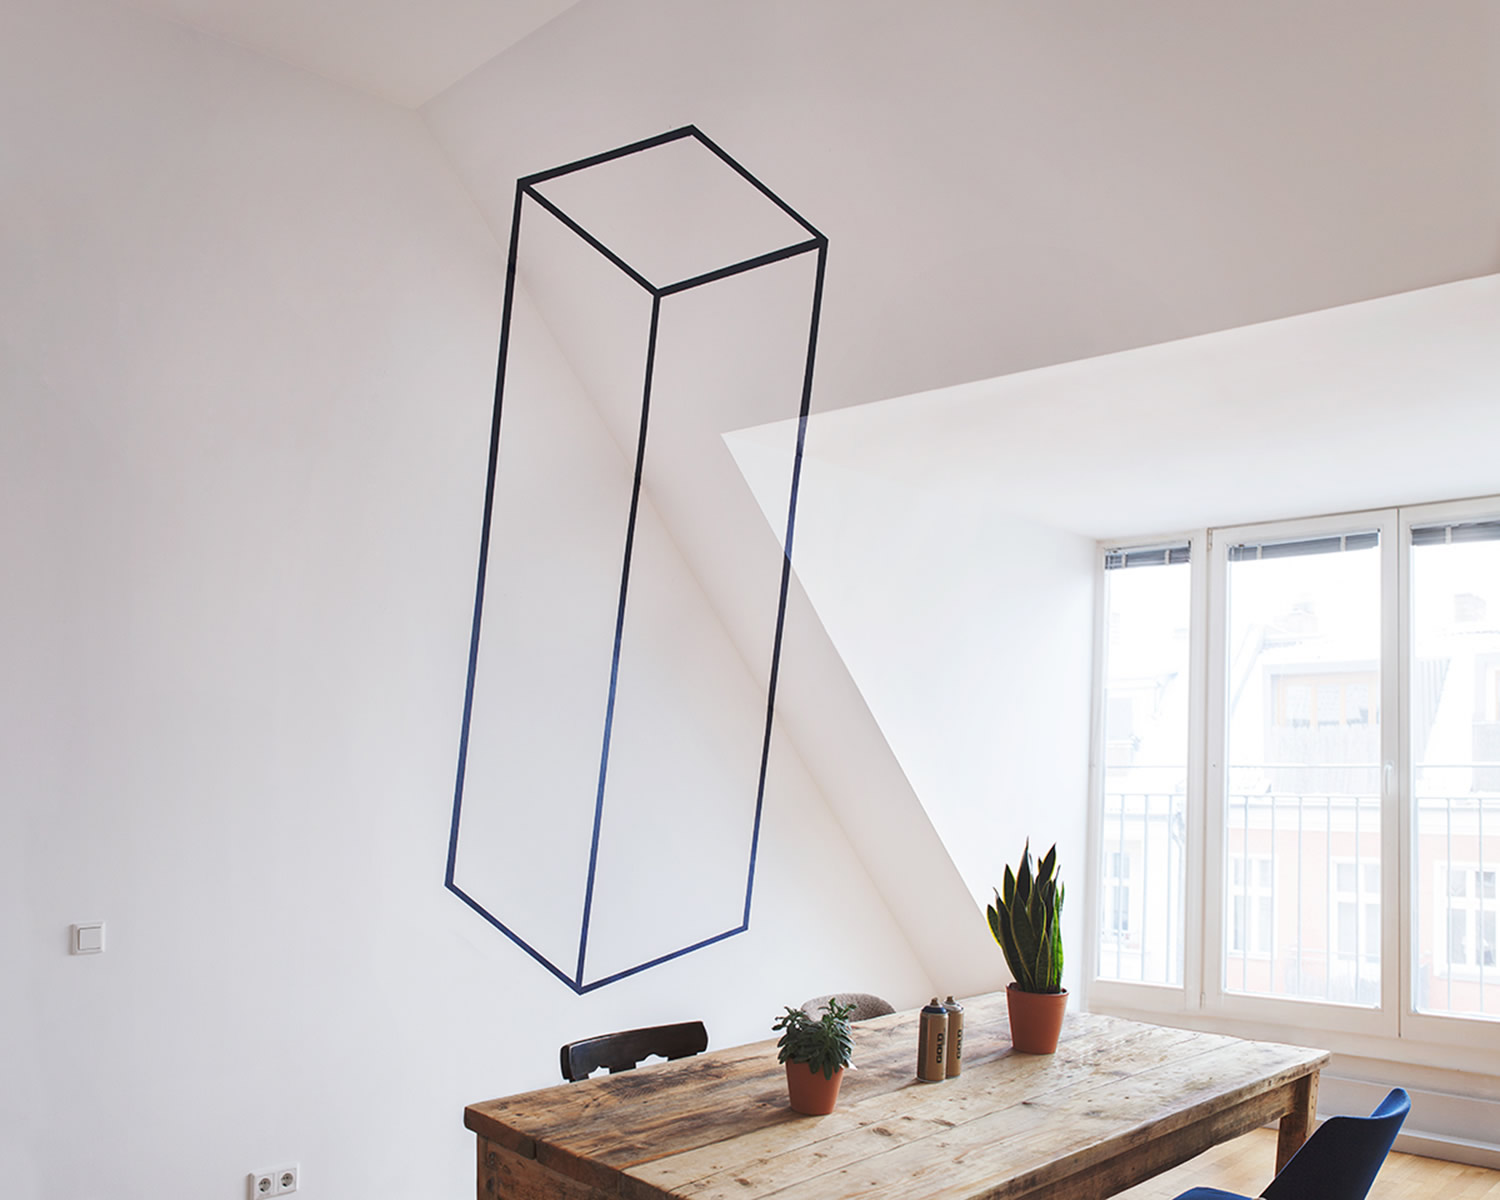 rectangle-cube in office space, Anamorphic art by fanette g.